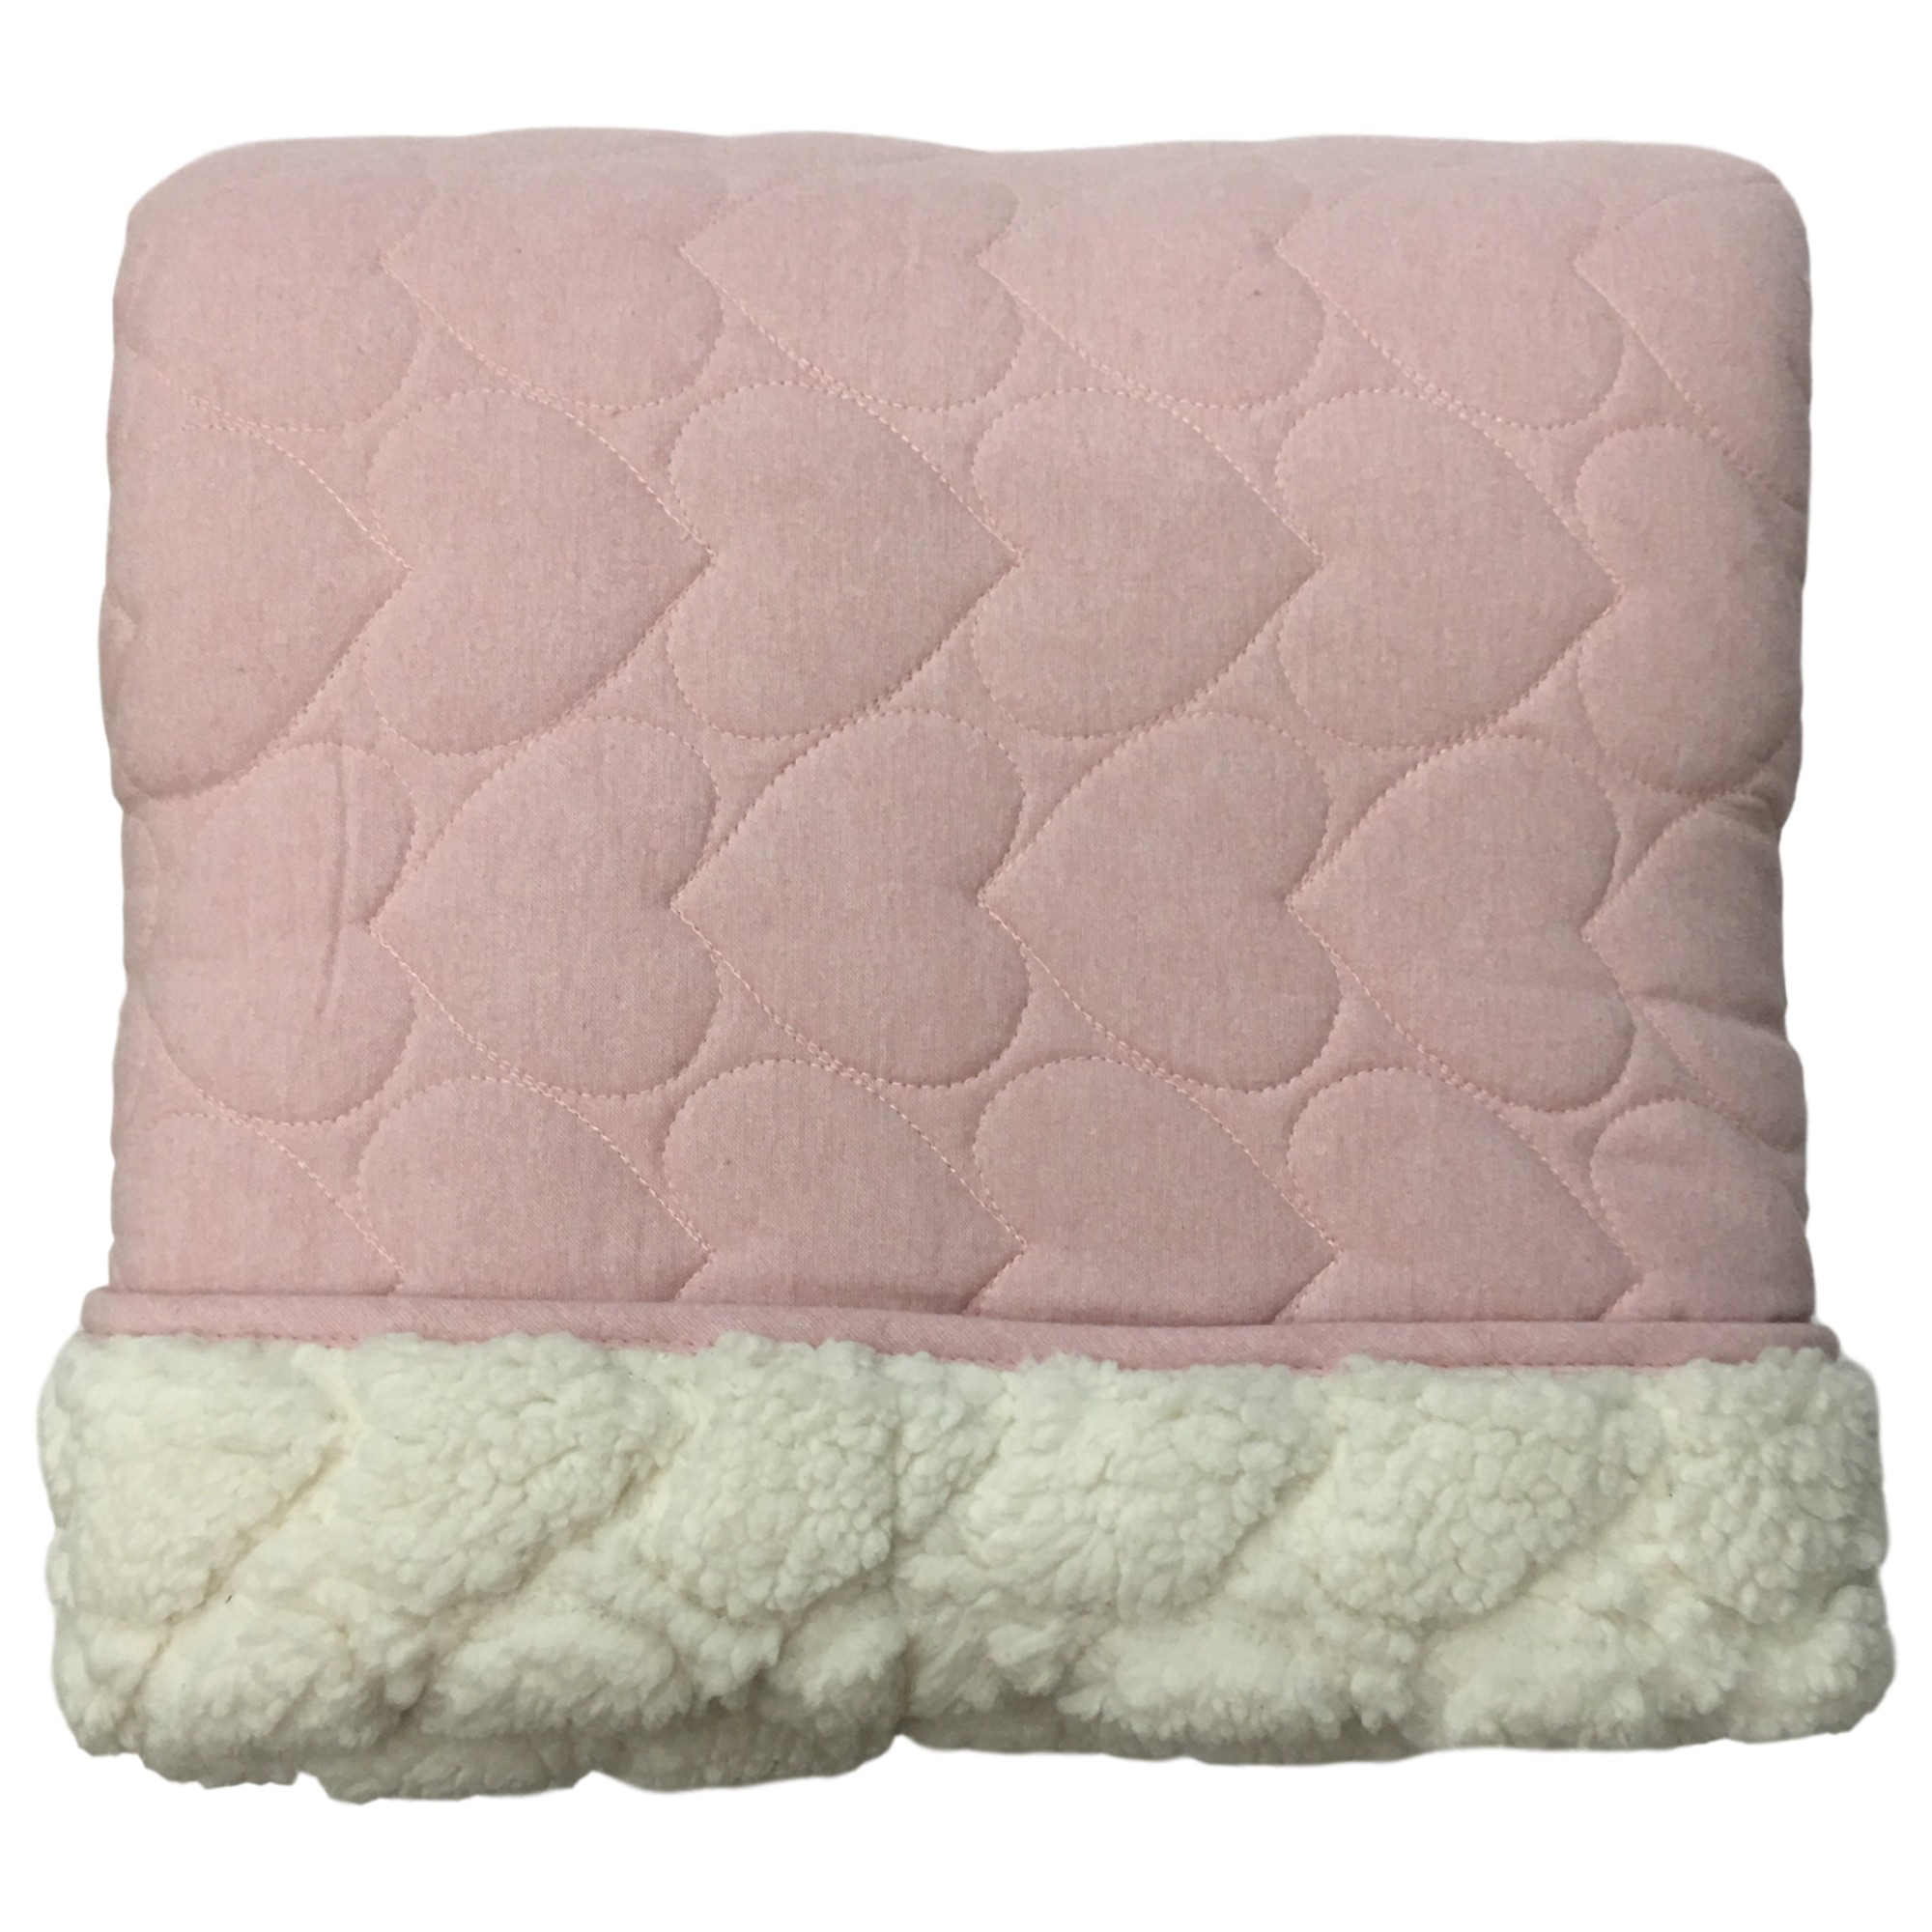 Ugg Millie Pink Hearts Twin Quilt Sham Bed Set With Sherpa Reverse 2 Piece Walmart Com Walmart Com